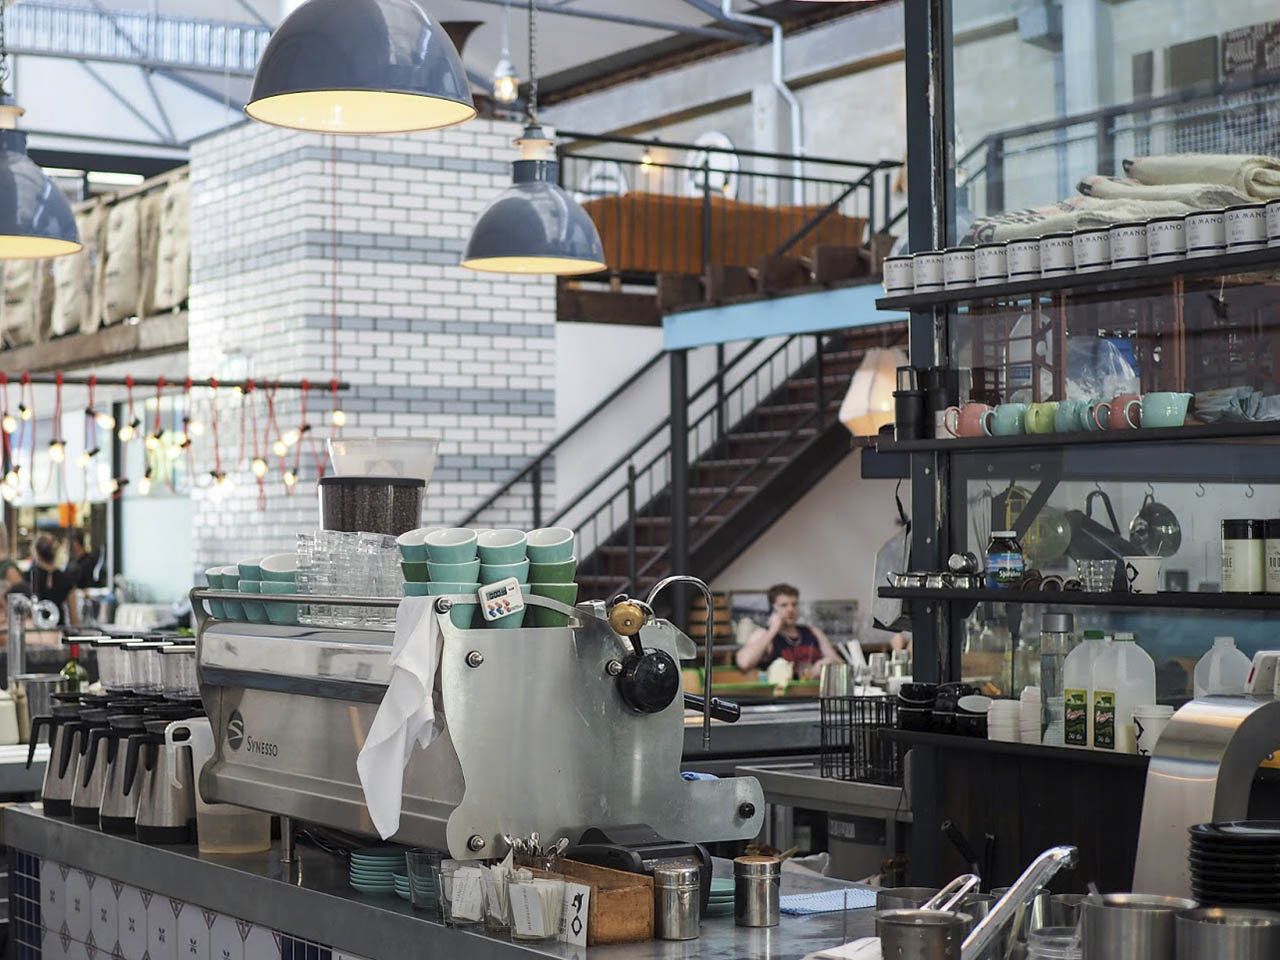 Cafetiere with green cups under large lamps with mezzanine stairway backdrop leading to mezzanine level